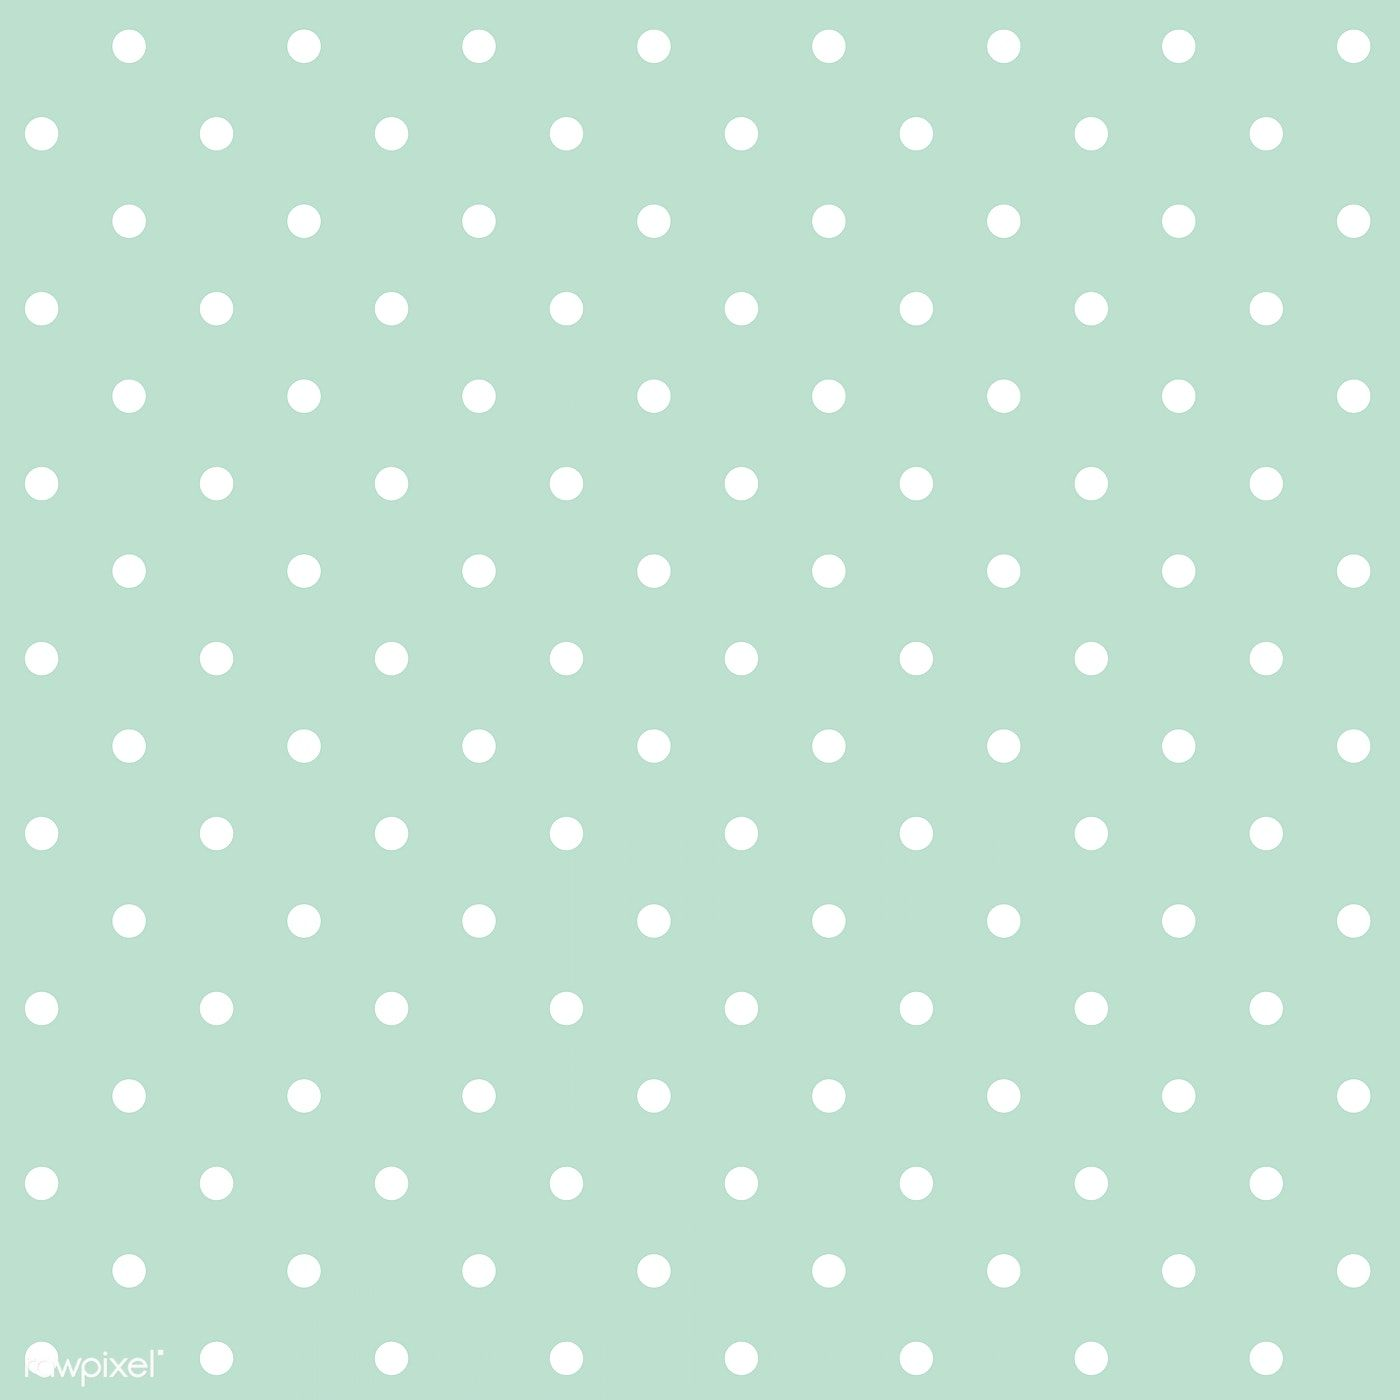 Mint Green And White Seamless Polka Dot Pattern Vector Free Image By Rawpixel Com Filmful Polka Dots Wallpaper Polka Dot Background Dot Pattern Vector